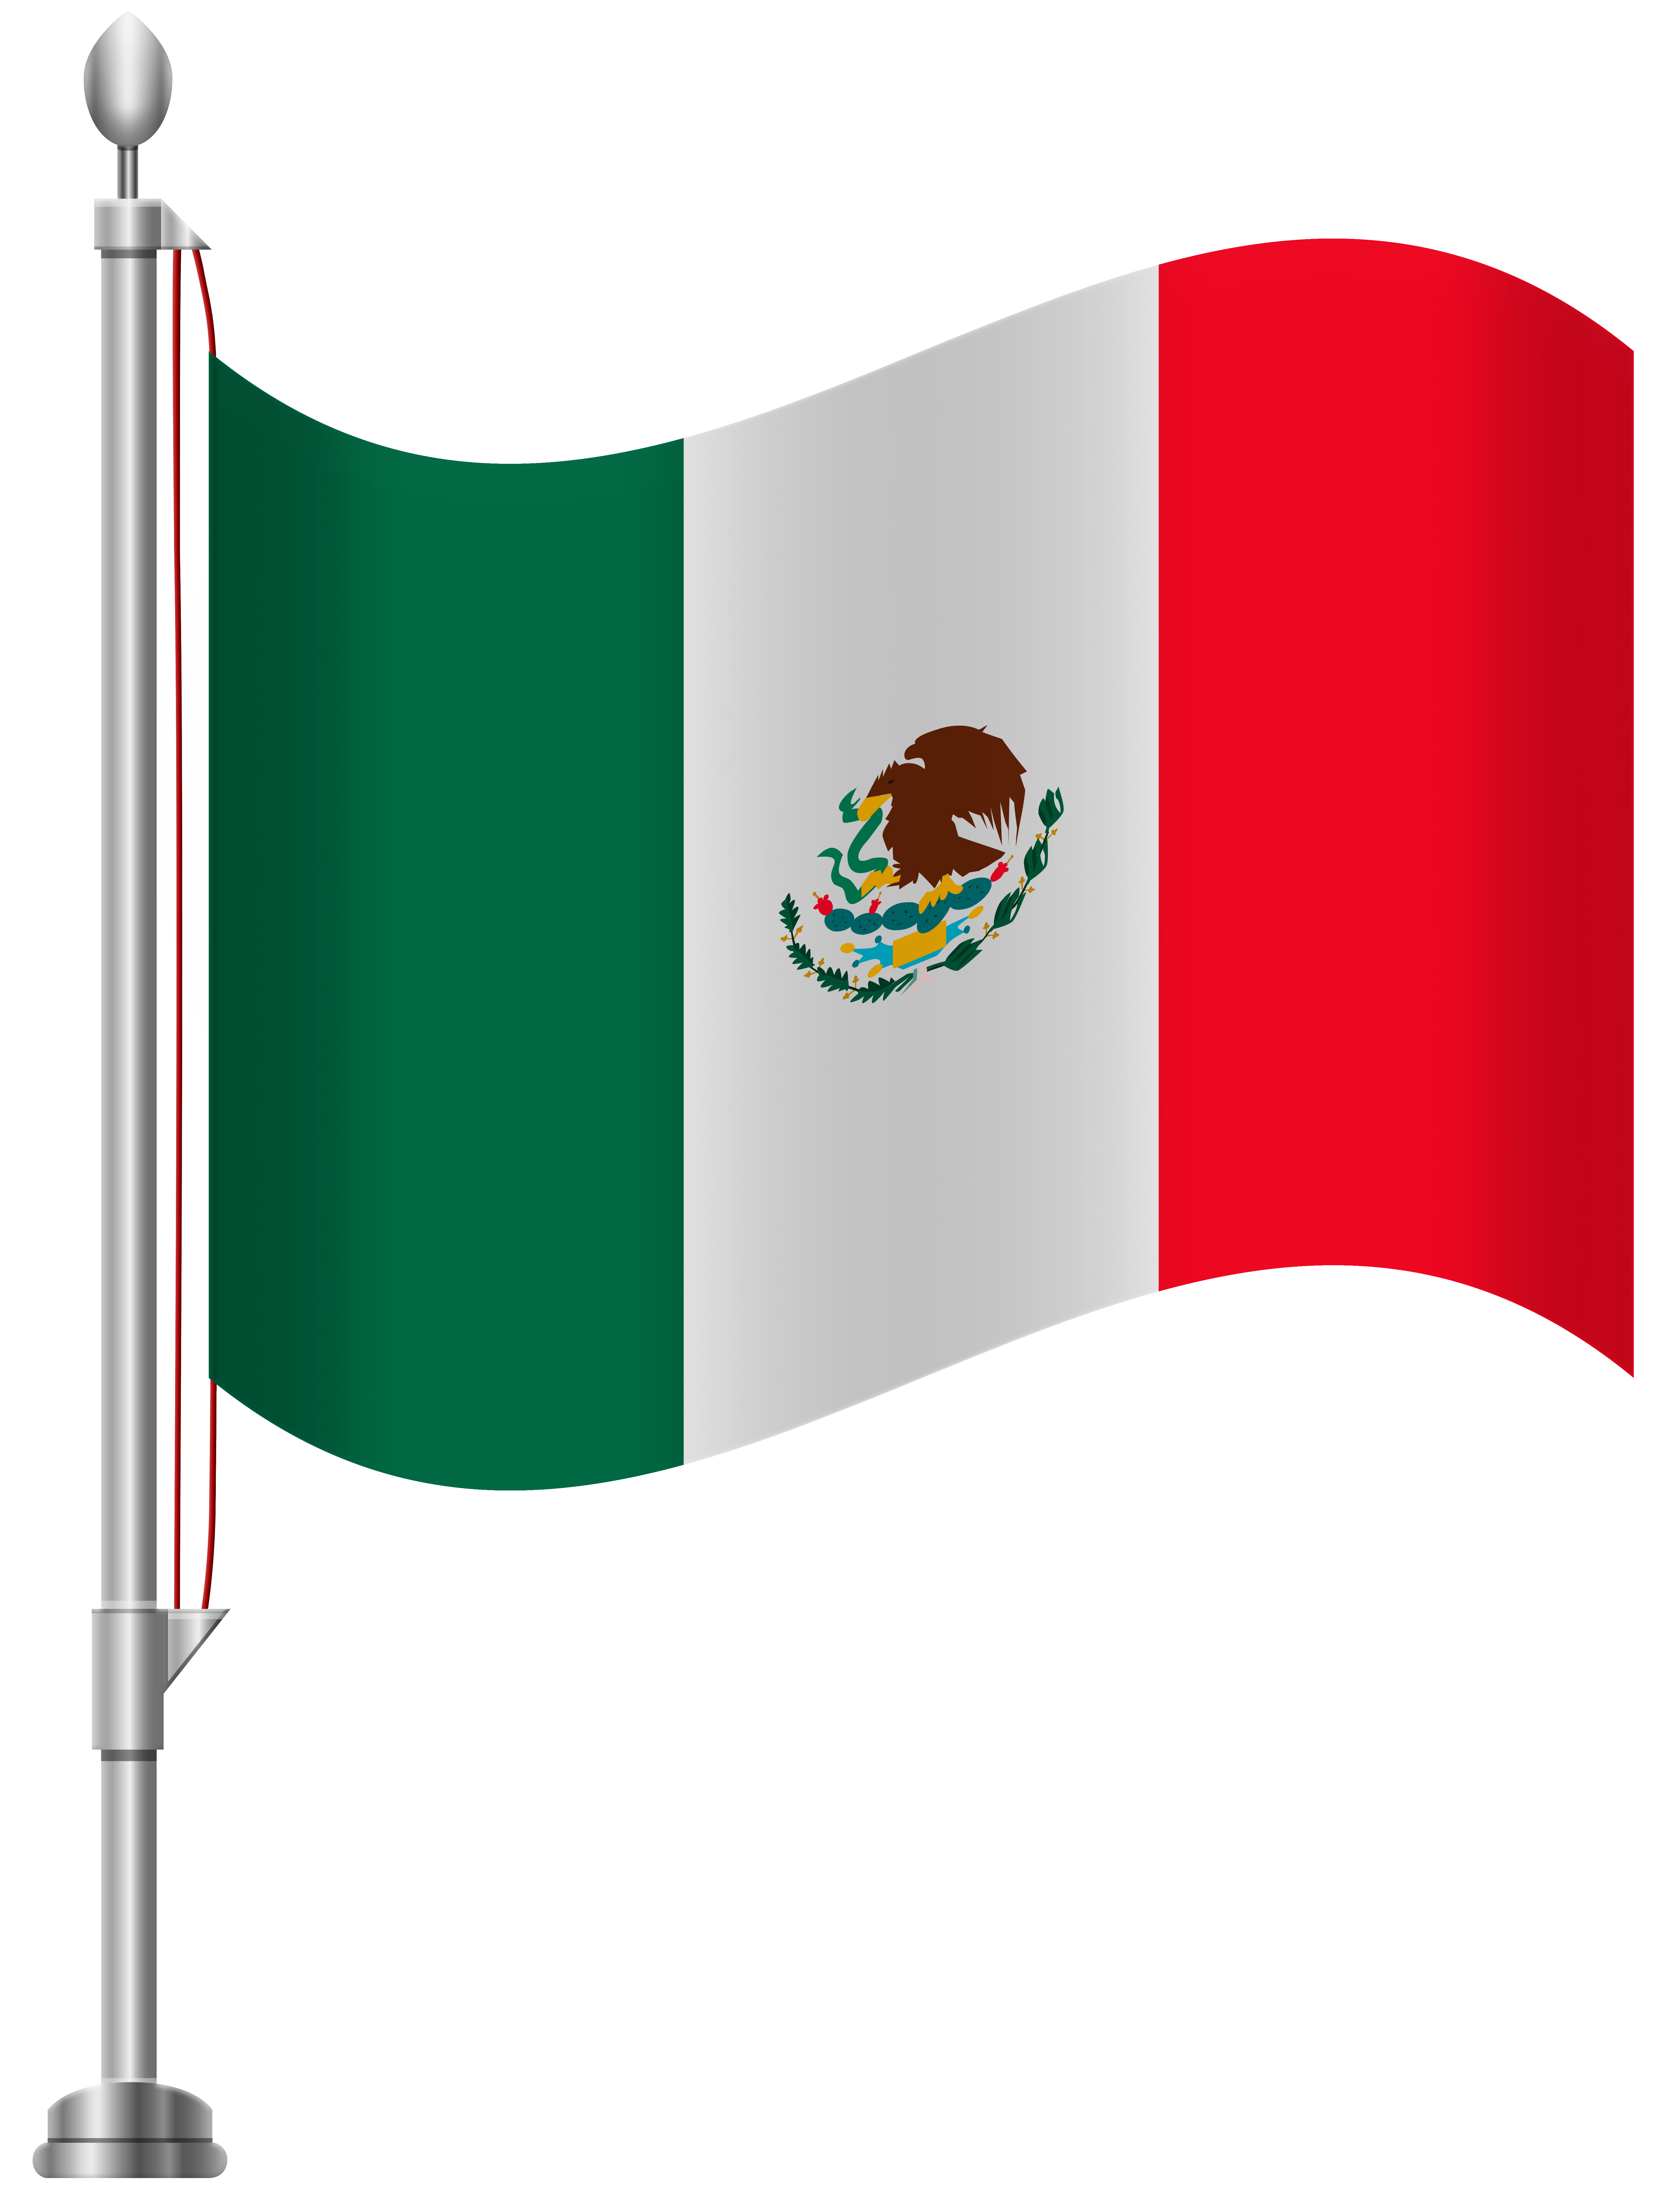 Mexican plate clipart png. Mexico flag clip art